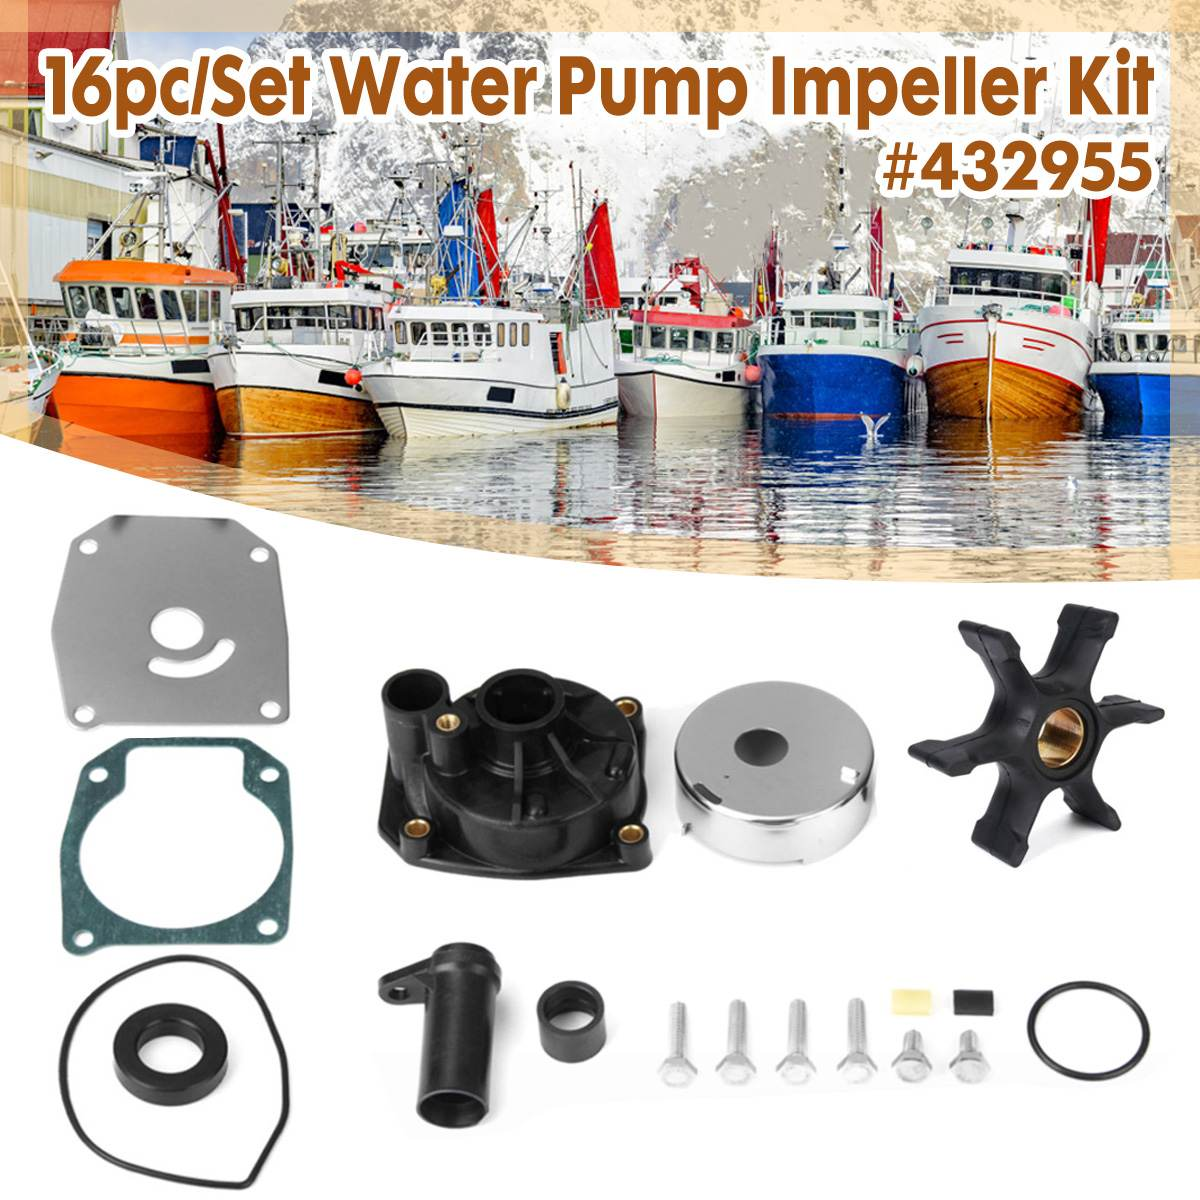 Impeller Water Pump Repair Kit For Johnson Evinrude 3 CYL 60 65 70 75 For HP 432955, 438591, 432956 436957 4601873 0432955